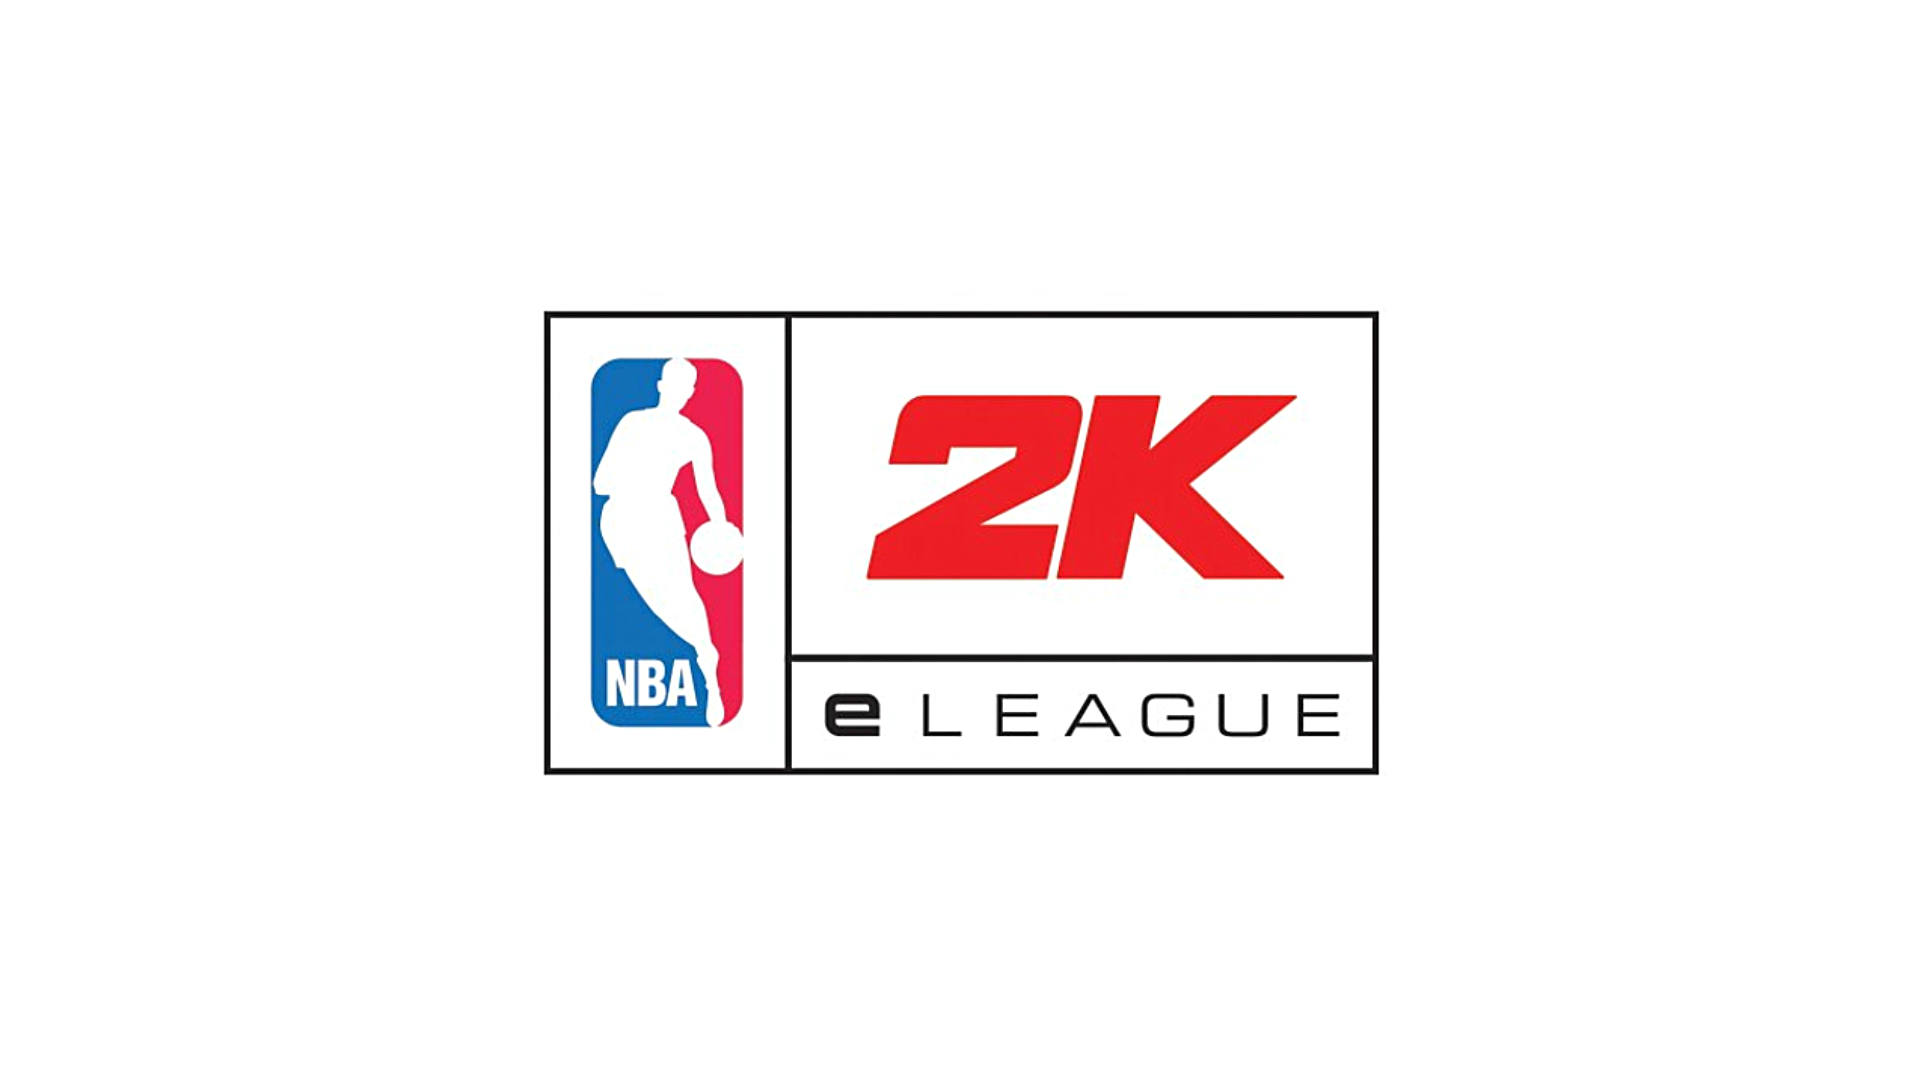 nba-2k-eleague-FTR-NBA2K-020917.jpg